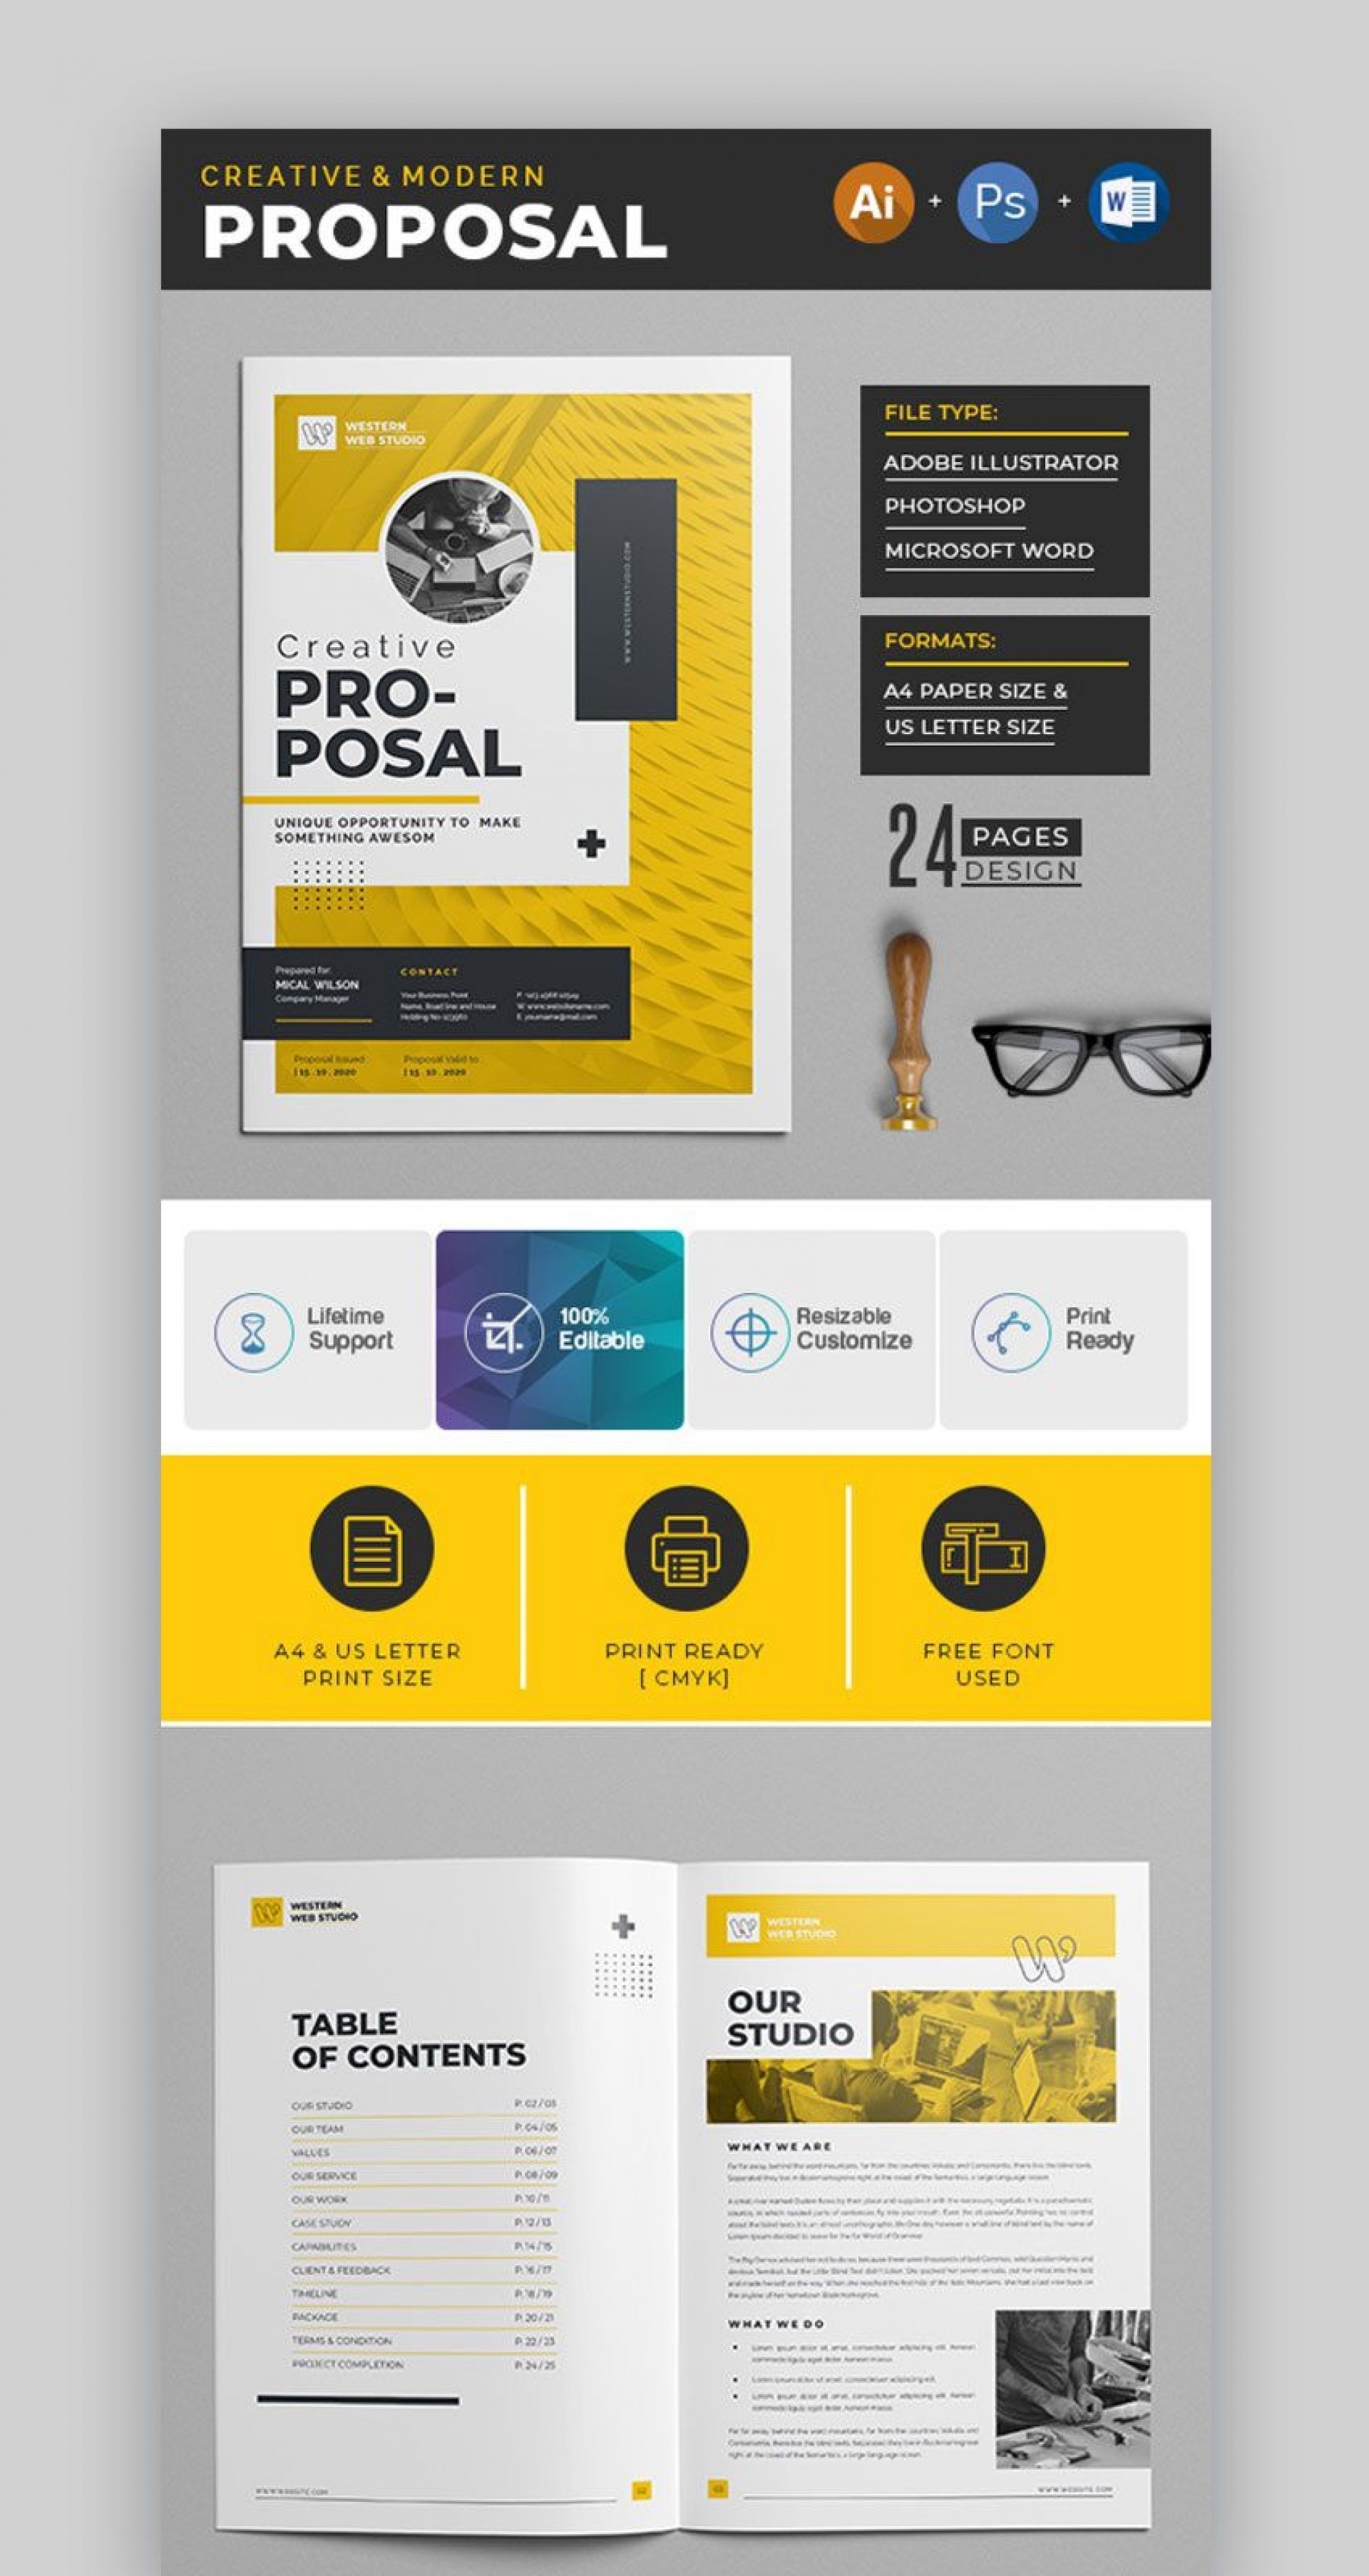 009 Astounding Web Design Proposal Template Free Highest Quality  Freelance Download1920